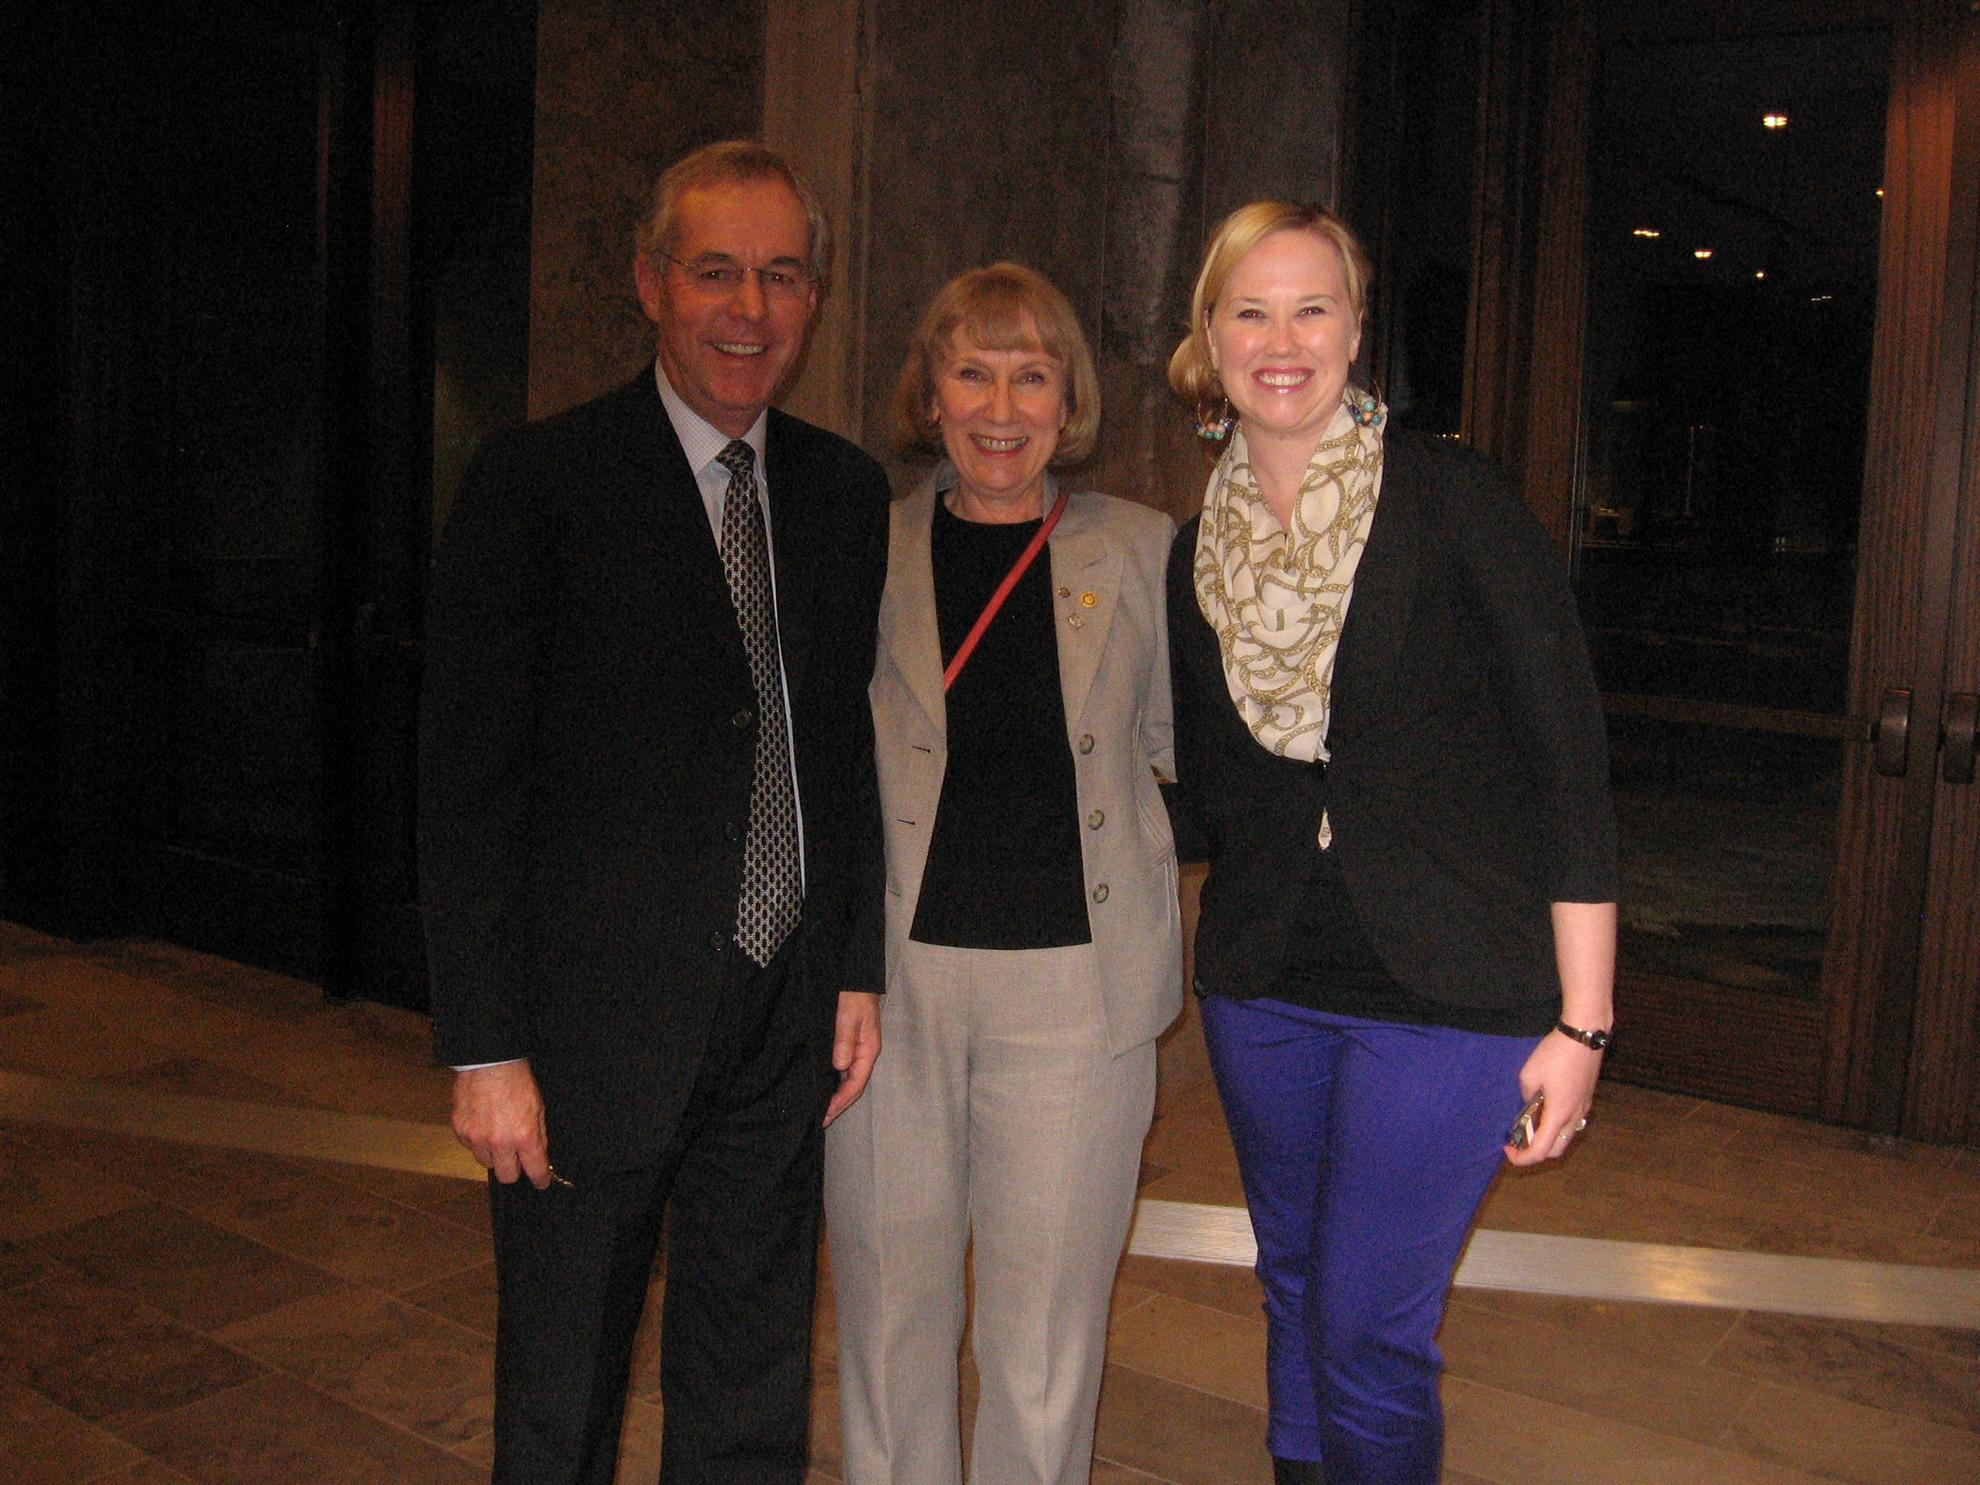 John Irwin (CFO Ivey School of Business), Barbara Robins (Rotarian)  and Kristen Rajnovich (Project Manager, Ivey School of Business)